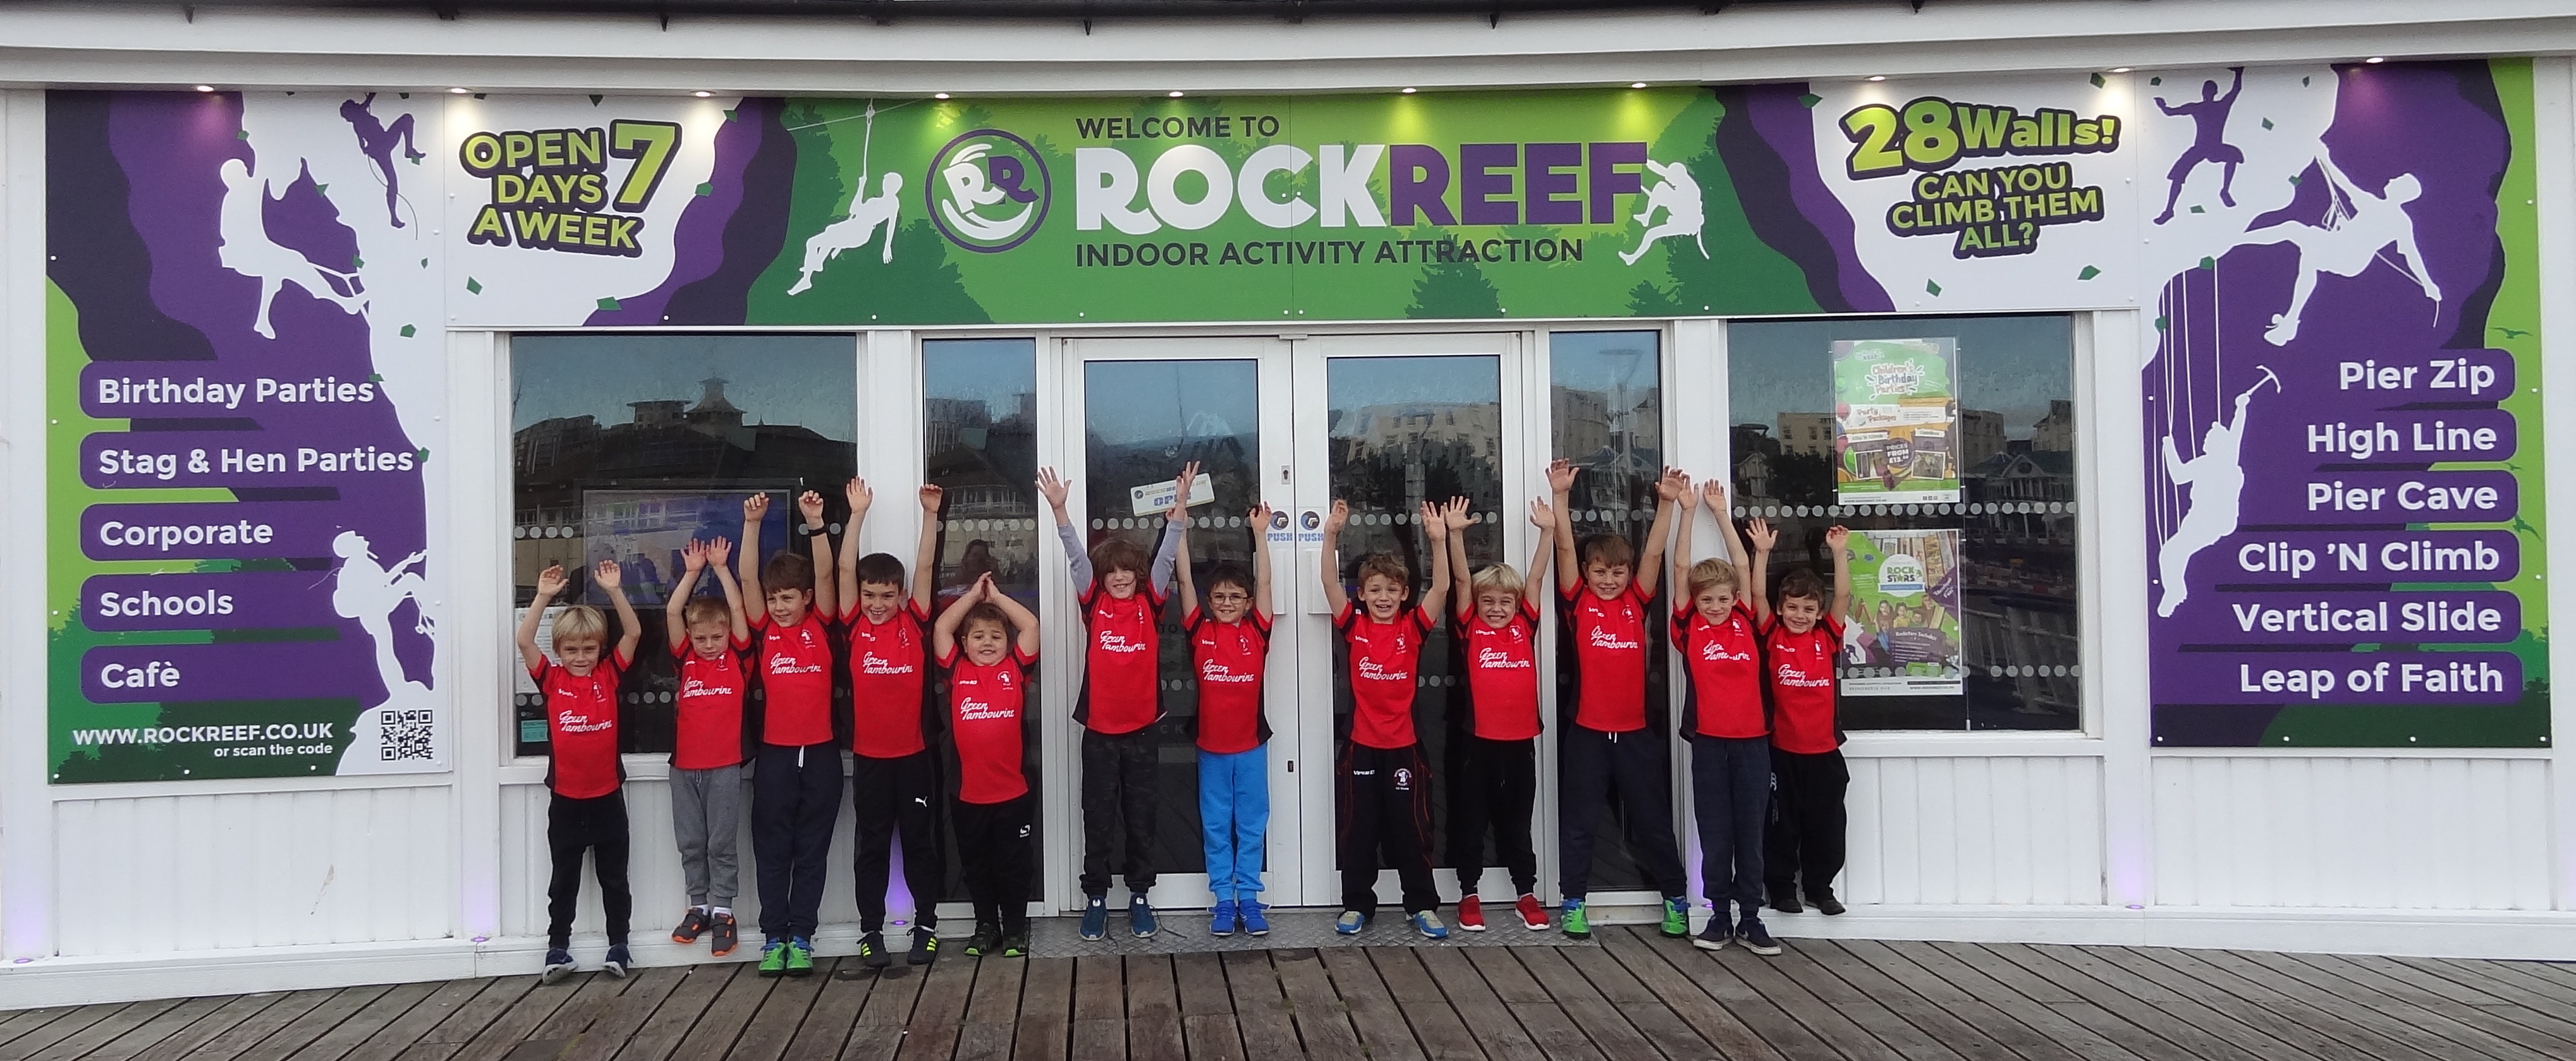 RockReef, Indoor Activity Attraction